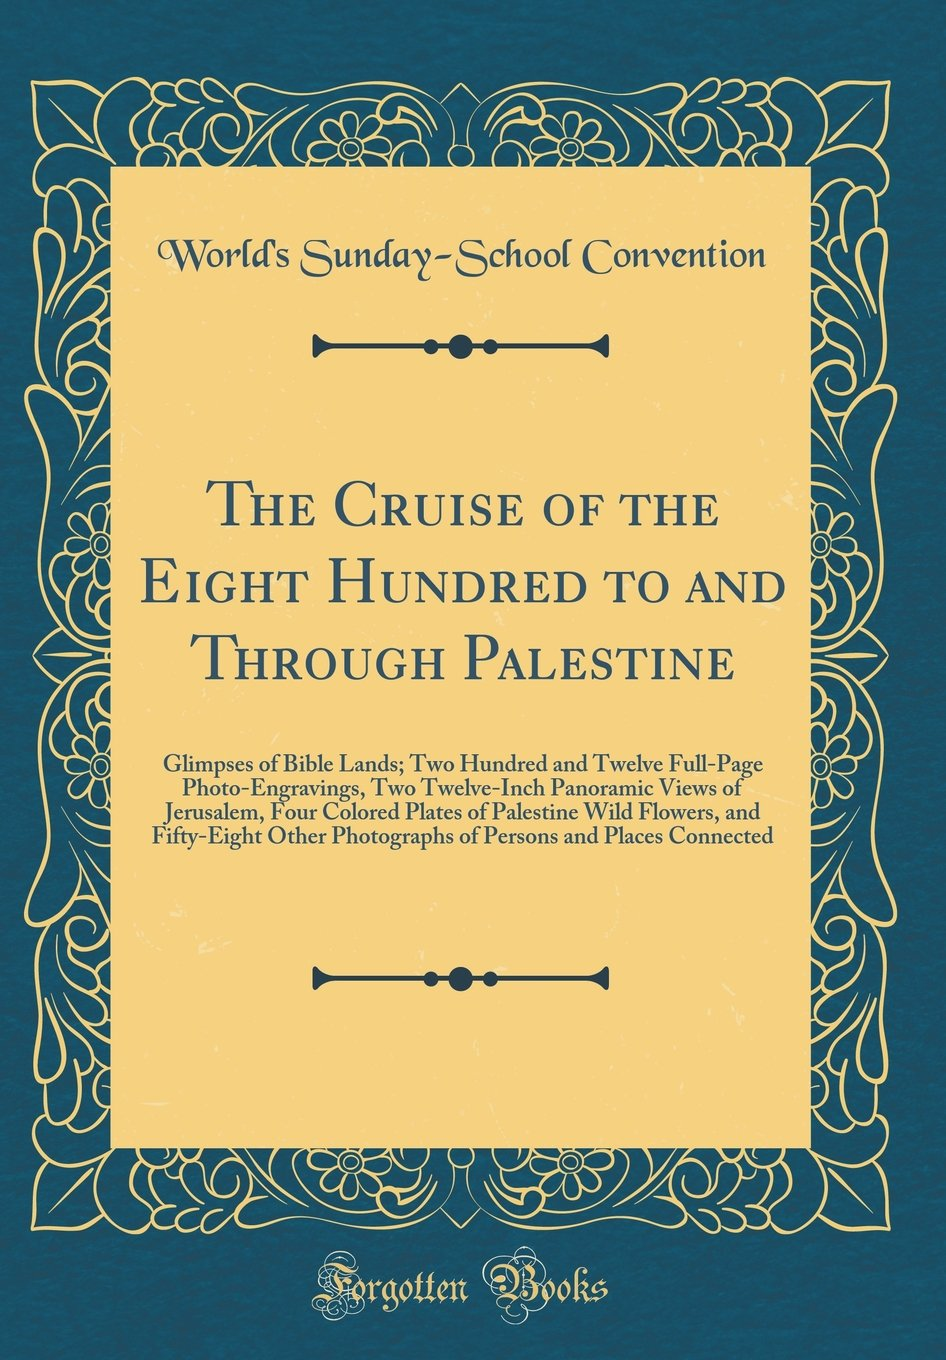 Download The Cruise of the Eight Hundred to and Through Palestine: Glimpses of Bible Lands; Two Hundred and Twelve Full-Page Photo-Engravings, Two Twelve-Inch ... Wild Flowers, and Fifty-Eight Other Photog pdf epub